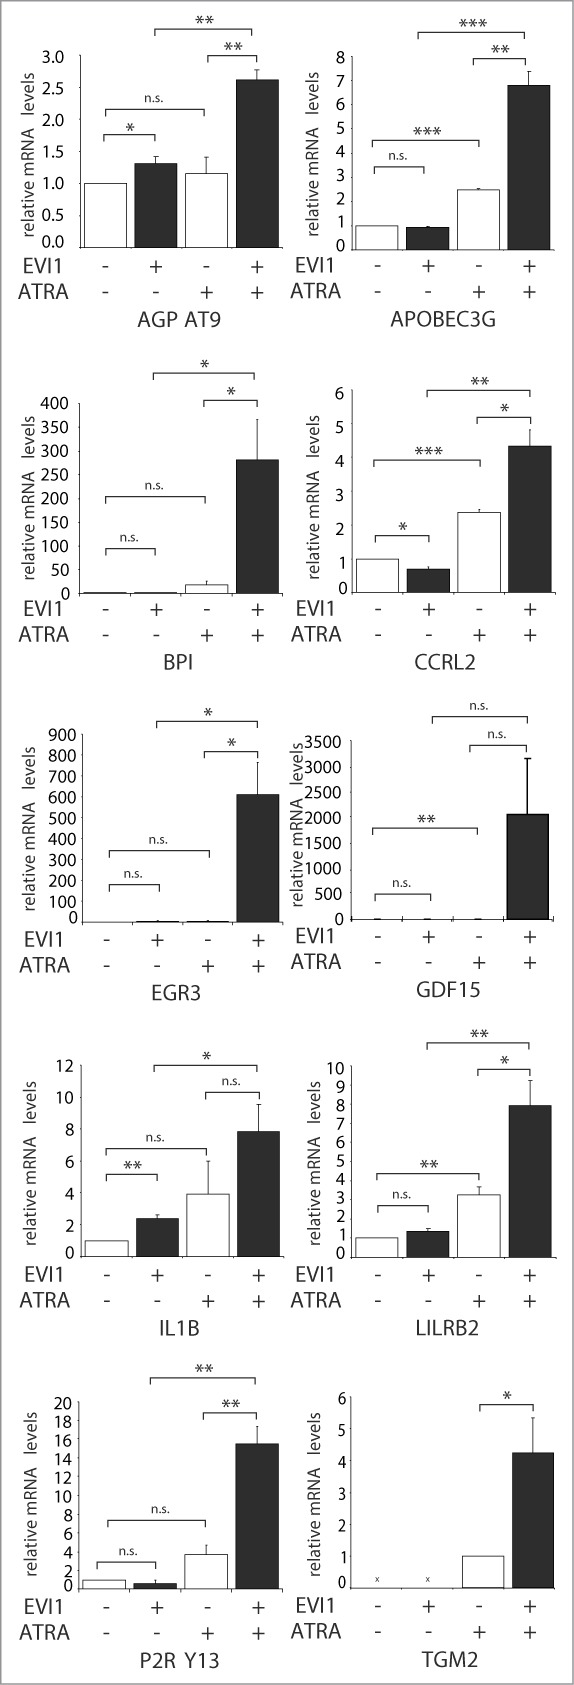 qRT-PCR confirms cooperative gene regulation by EVI1 and ATRA in U937 cells. RNA from U937_vec and U937_EVI1 cells that had been treated with solvent or ATRA for 24 h was reverse transcribed and subjected to qRT-PCR for the indicated genes. Gene expression relative to the housekeeping gene B2M and to solvent treated U937_vec cells was calculated using the ΔΔ Ct method. 88 Results represent means + SEs from at least 3 independent experiments; all of these were also independent of the microarray experiments. In the absence of ATRA, TGM2 mRNA levels were below the detection limit. Significance was calculated using Student's 2-tailed t-test (*, P